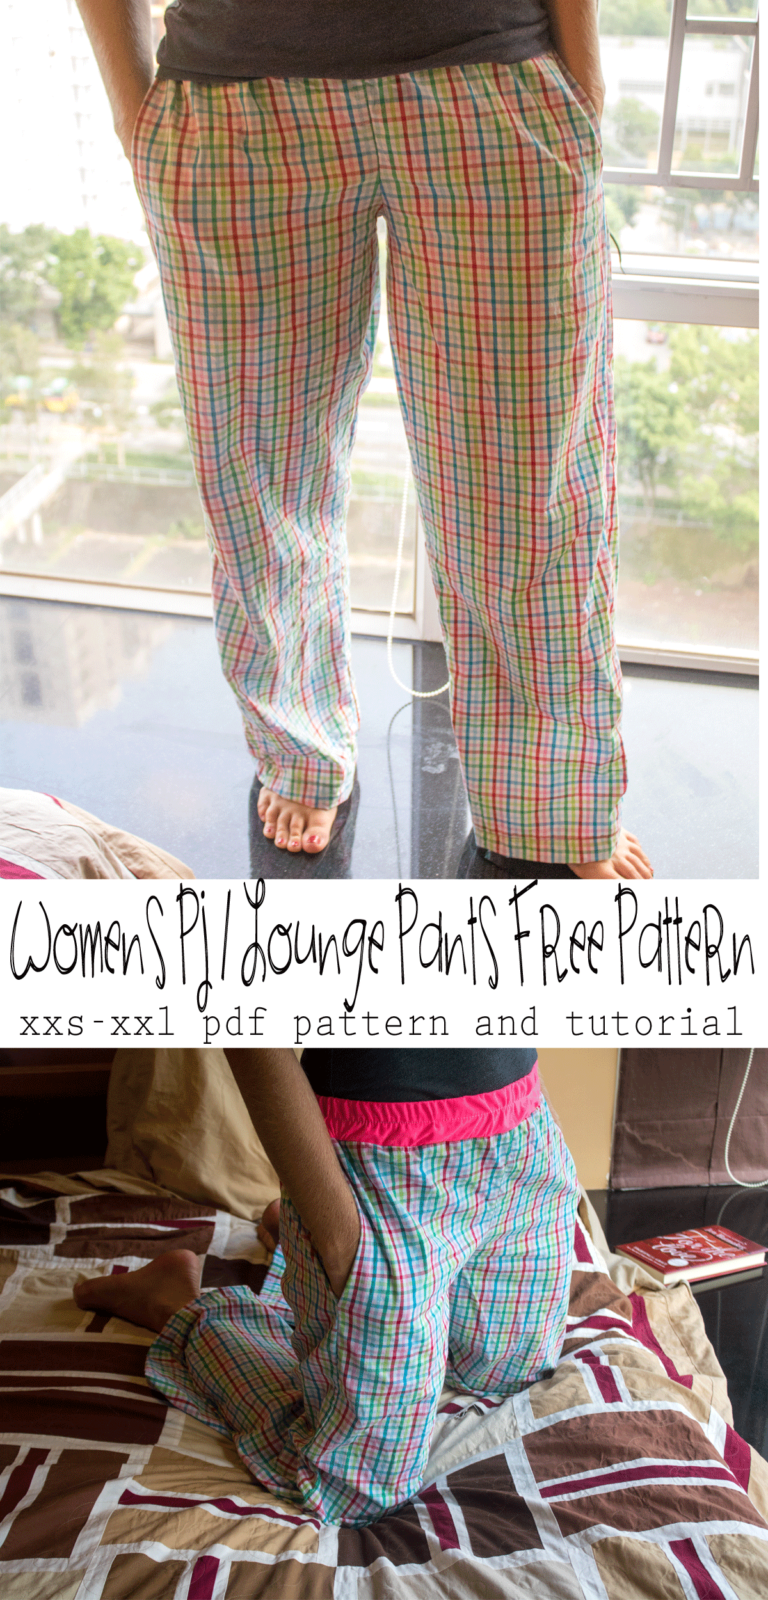 Womens Pj / Lounge Pants Free Pattern from Nap Time Creations